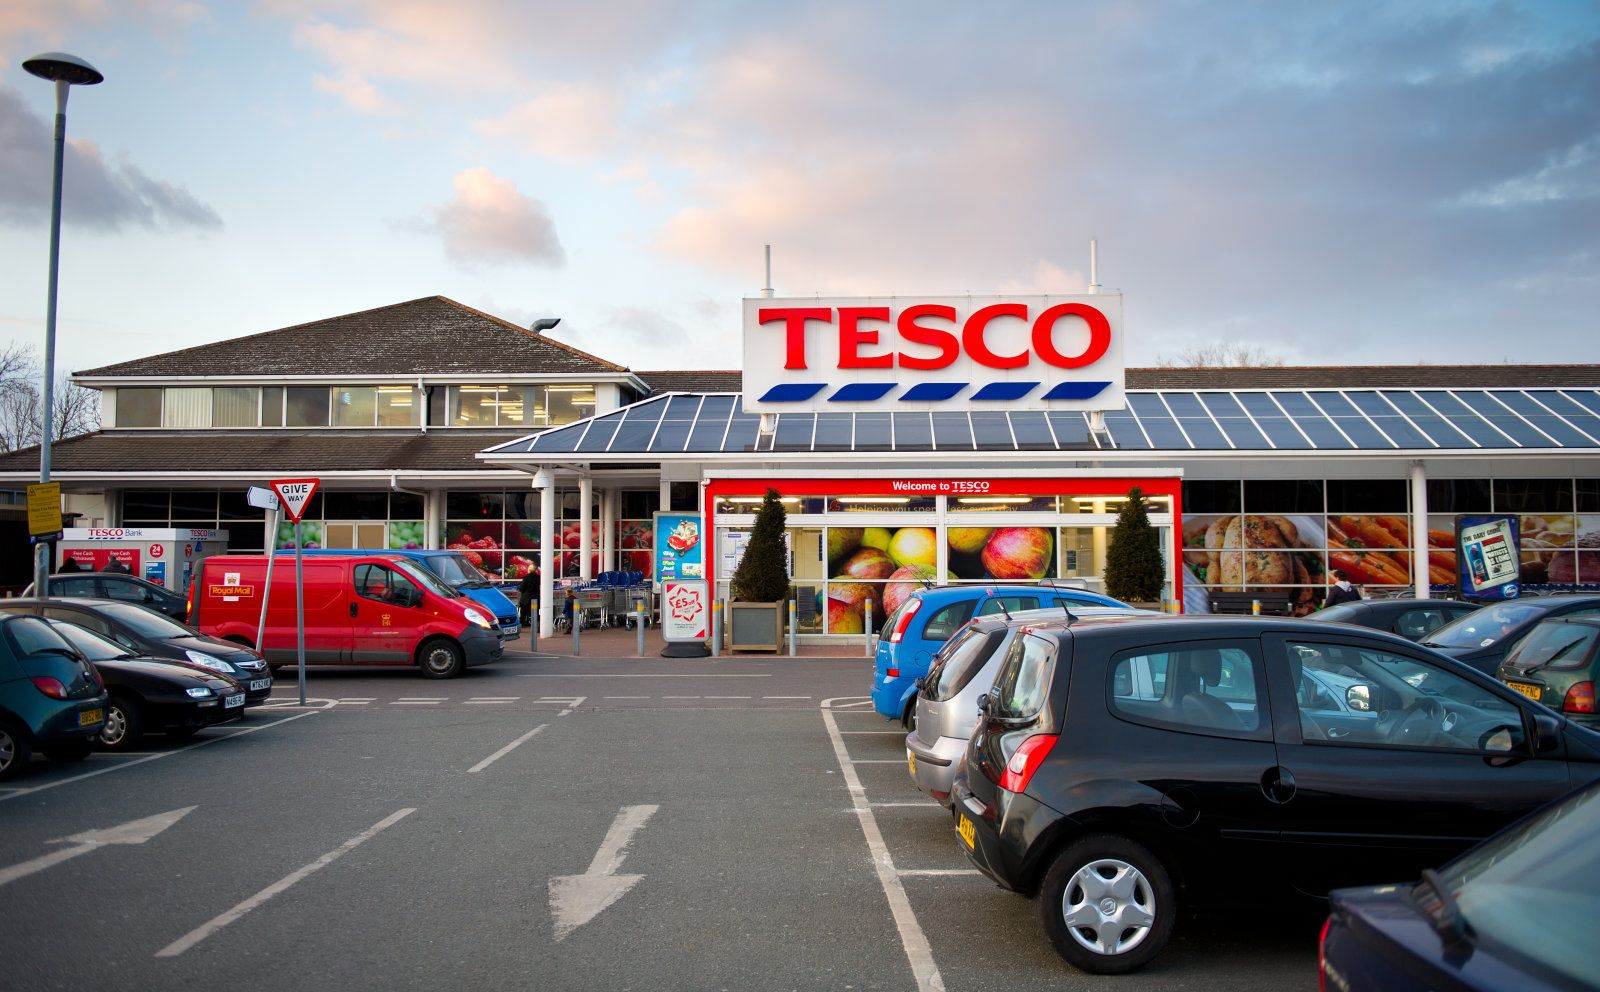 Tesco has a onehour delivery service in London now, too